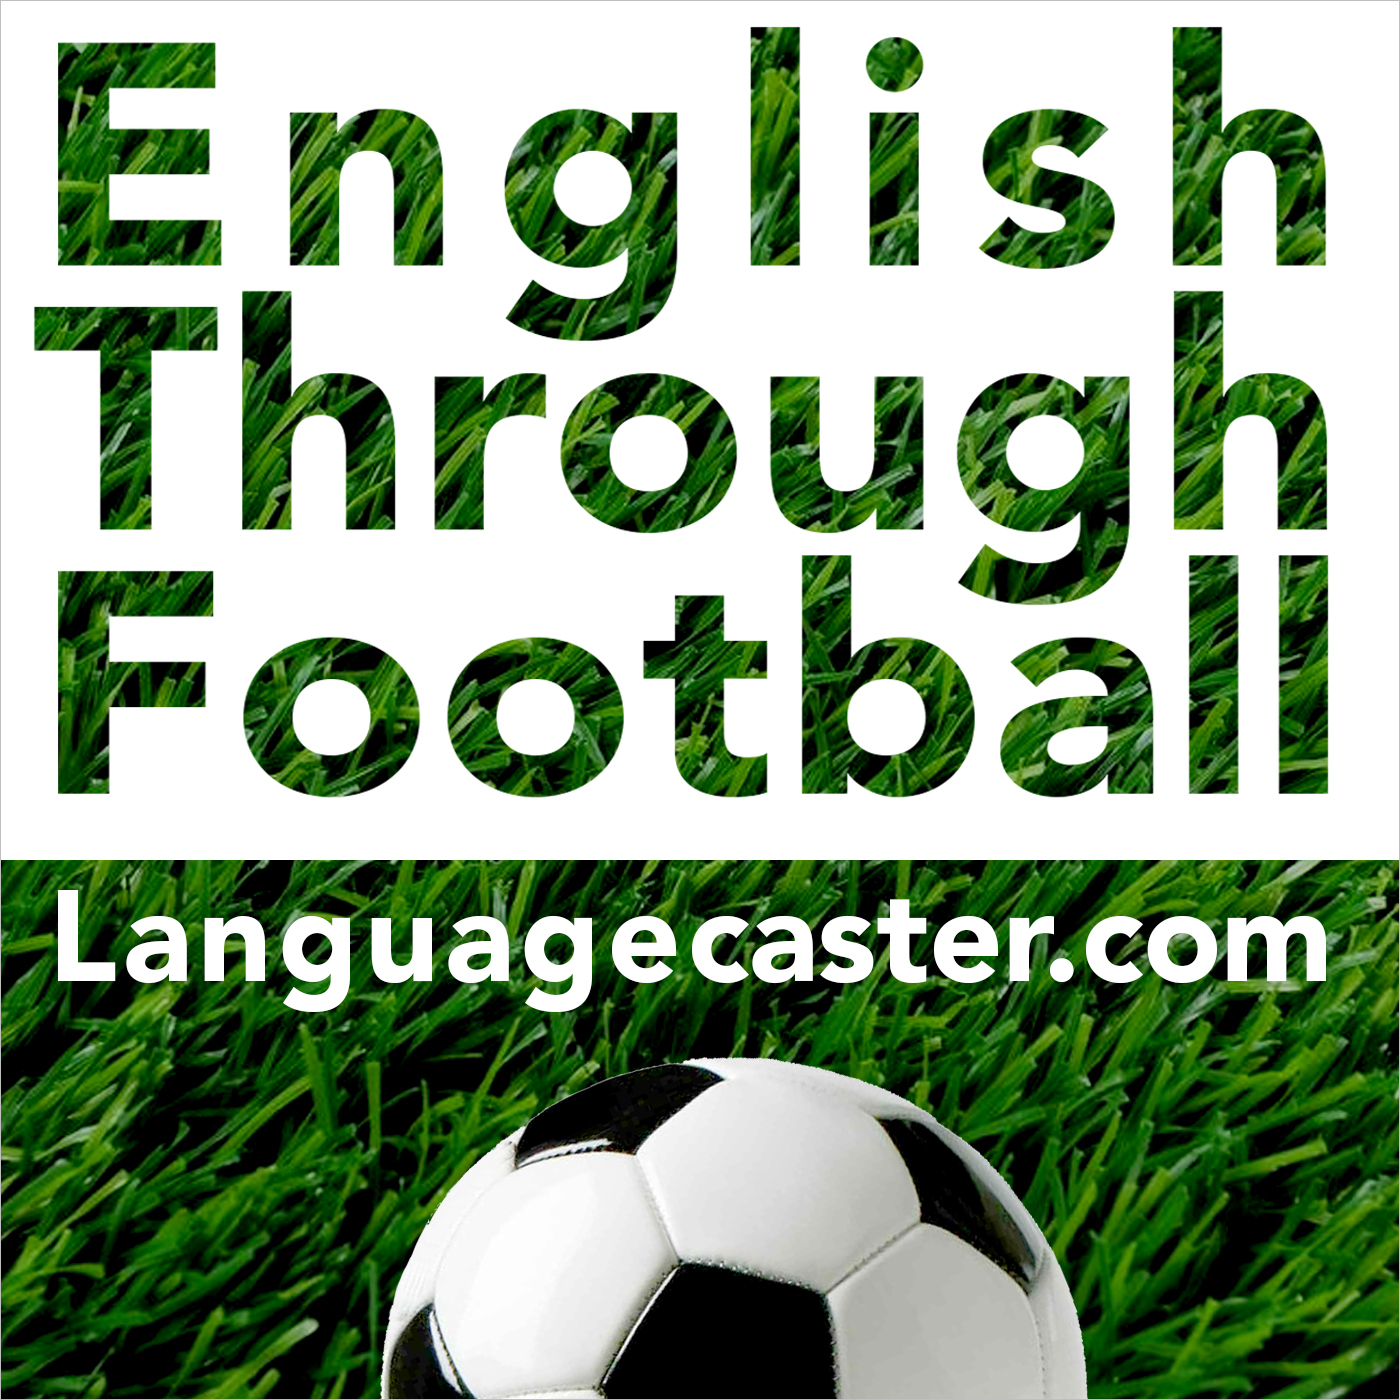 Learn English through Football Podcast: 2017 FA Cup 3rd Round